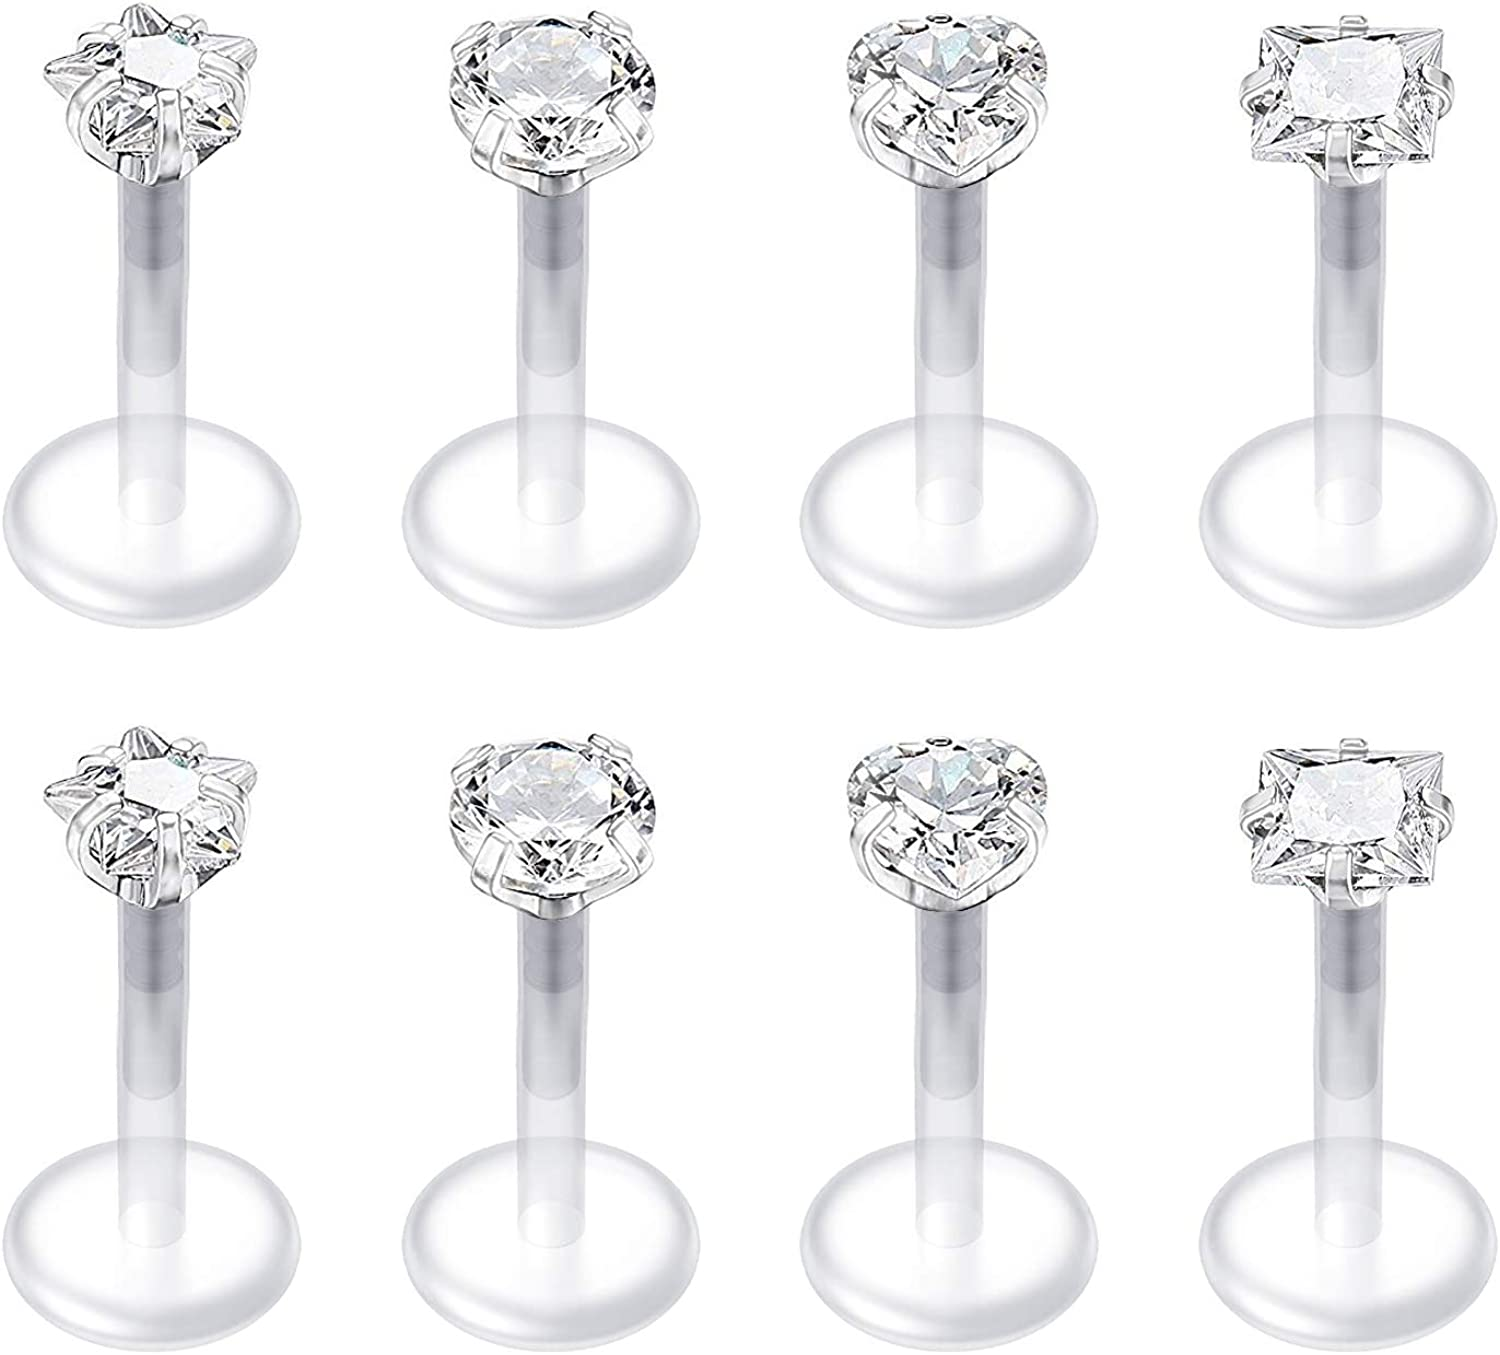 QWALIT 16G Clear Lip Rings Studs Cartilage Tragus Earrings Retainer for Work Plastic Cubic Zirconia Labret Monroe Piercing Jewelry 6mm 8mm